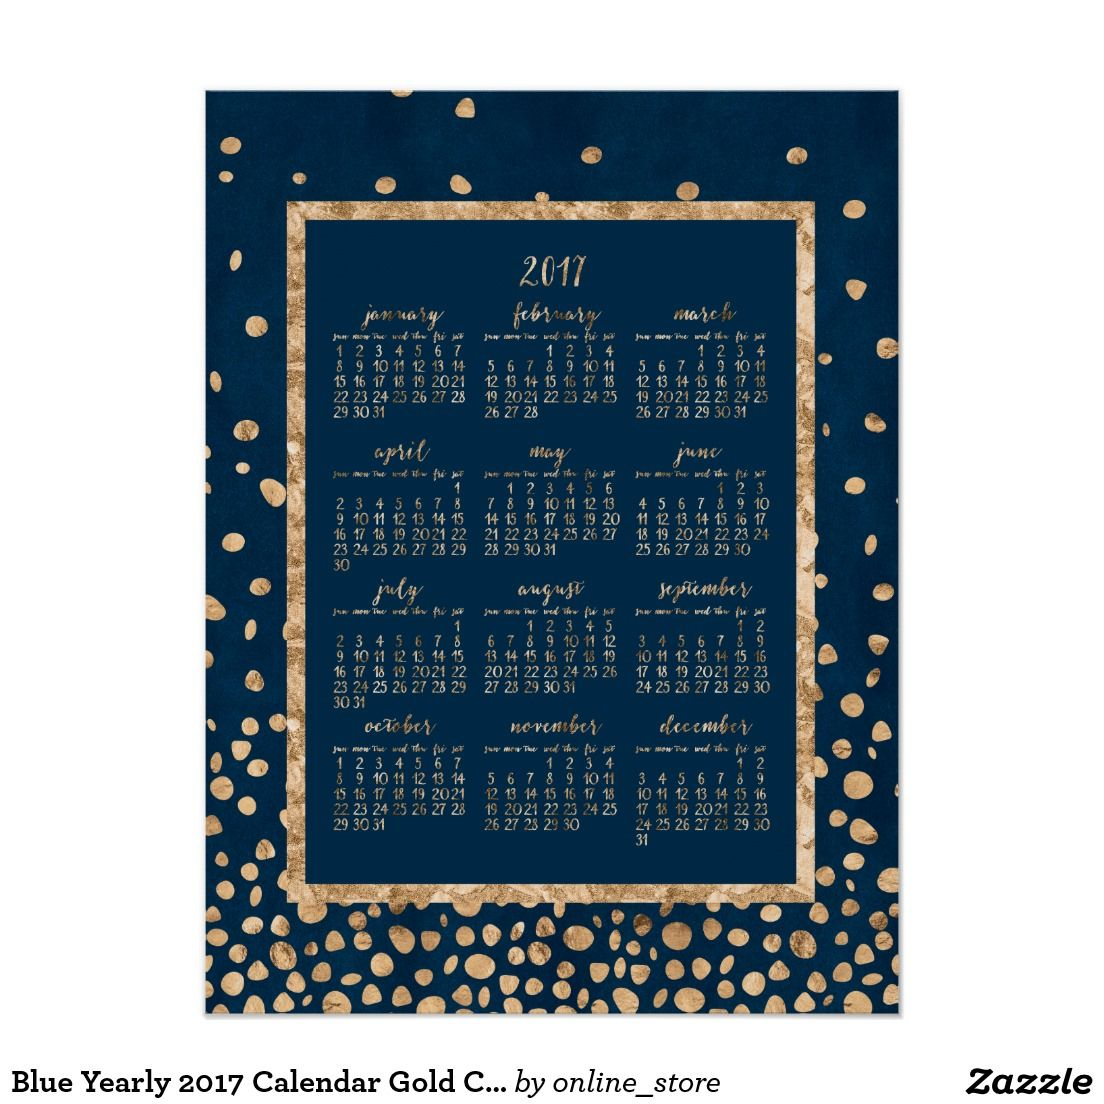 Blue Yearly 2017 Calendar Gold Confetti Poster